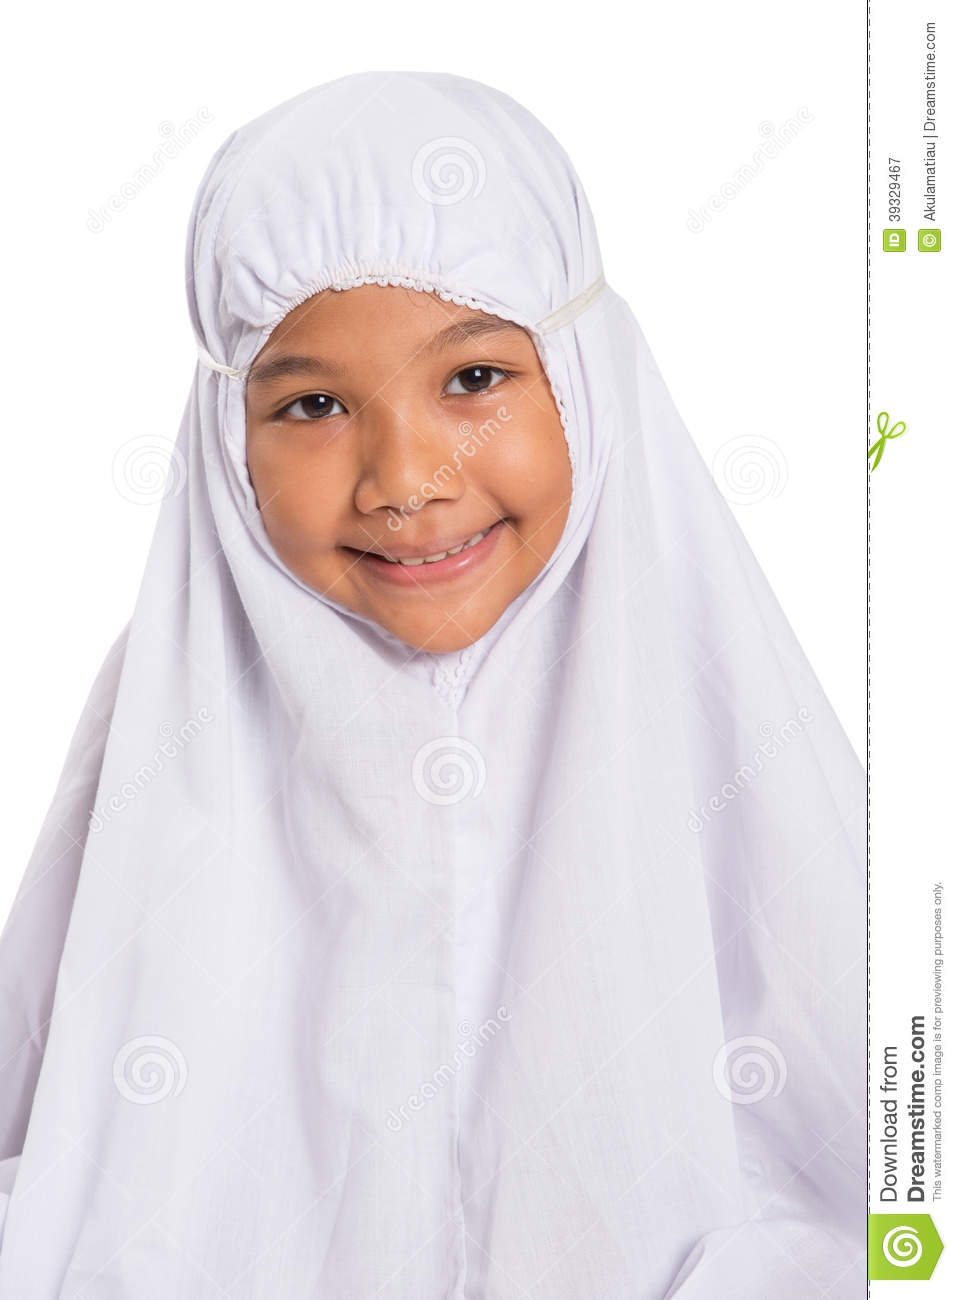 Young Muslim Girl In White Hijab Vi Stock Photo - Image 39329467-2085